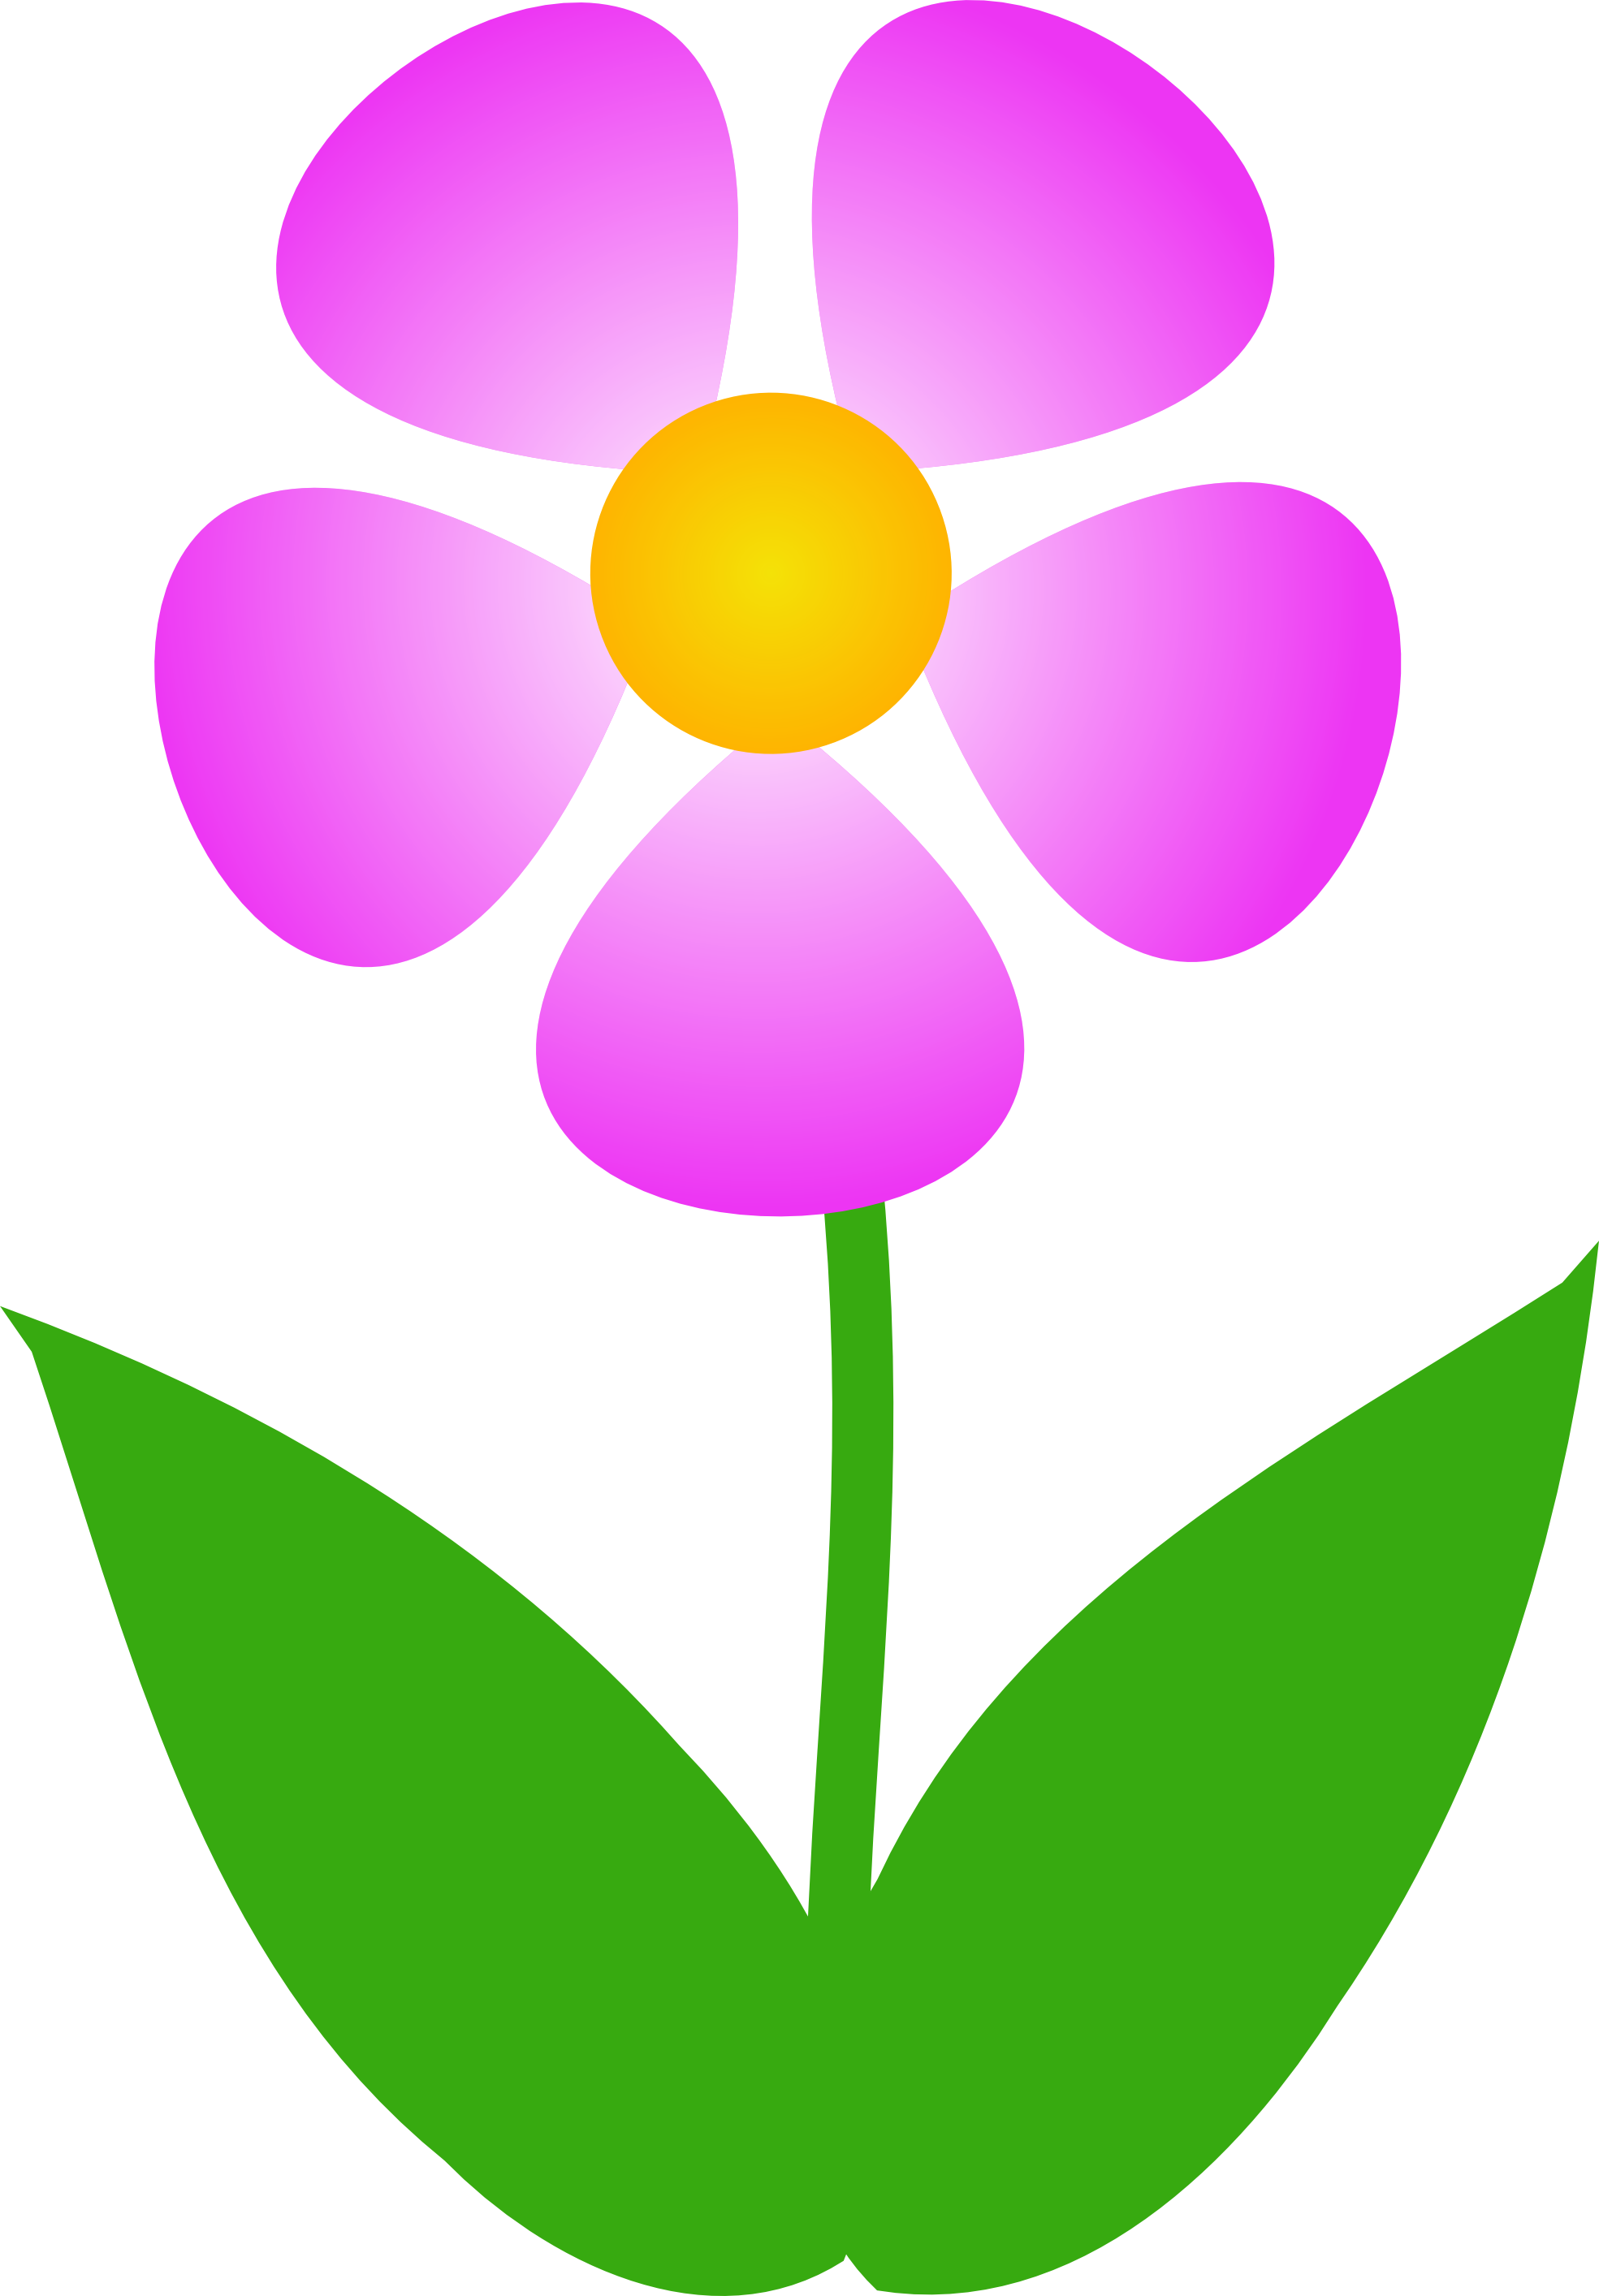 Free clipart images of flower - Clip Art Of Flowers